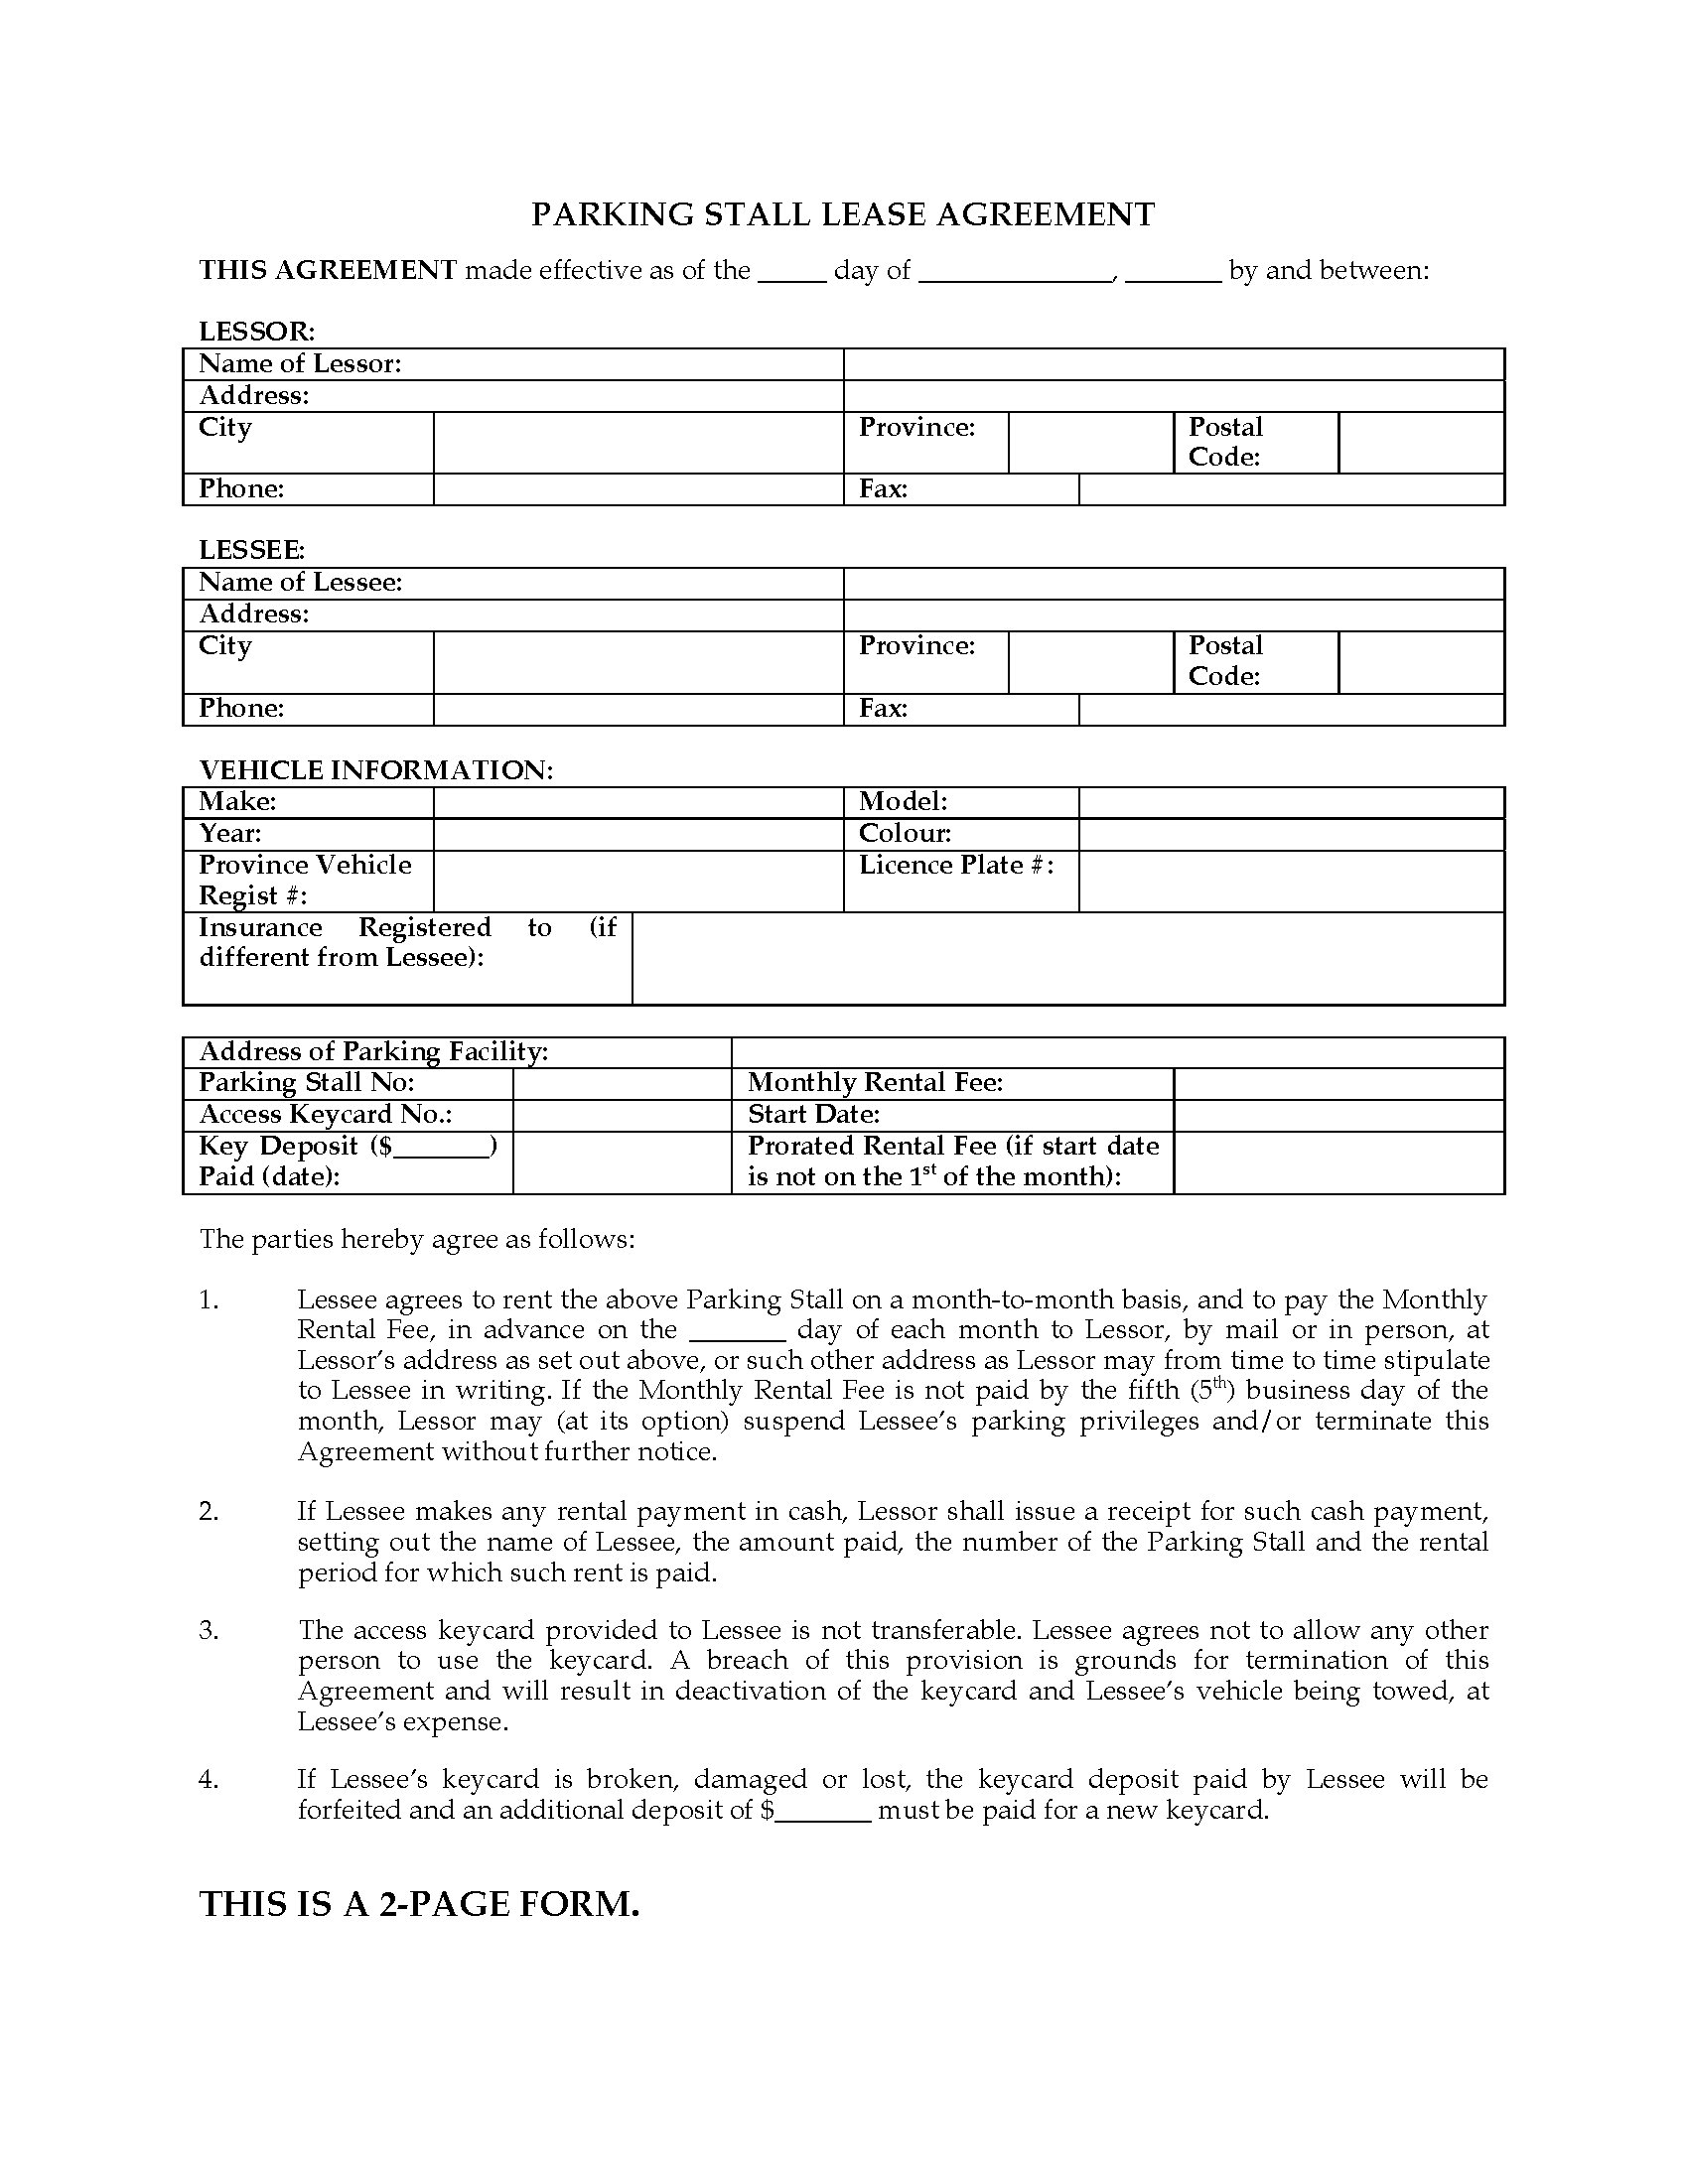 British Columbia Parking Stall Lease Form